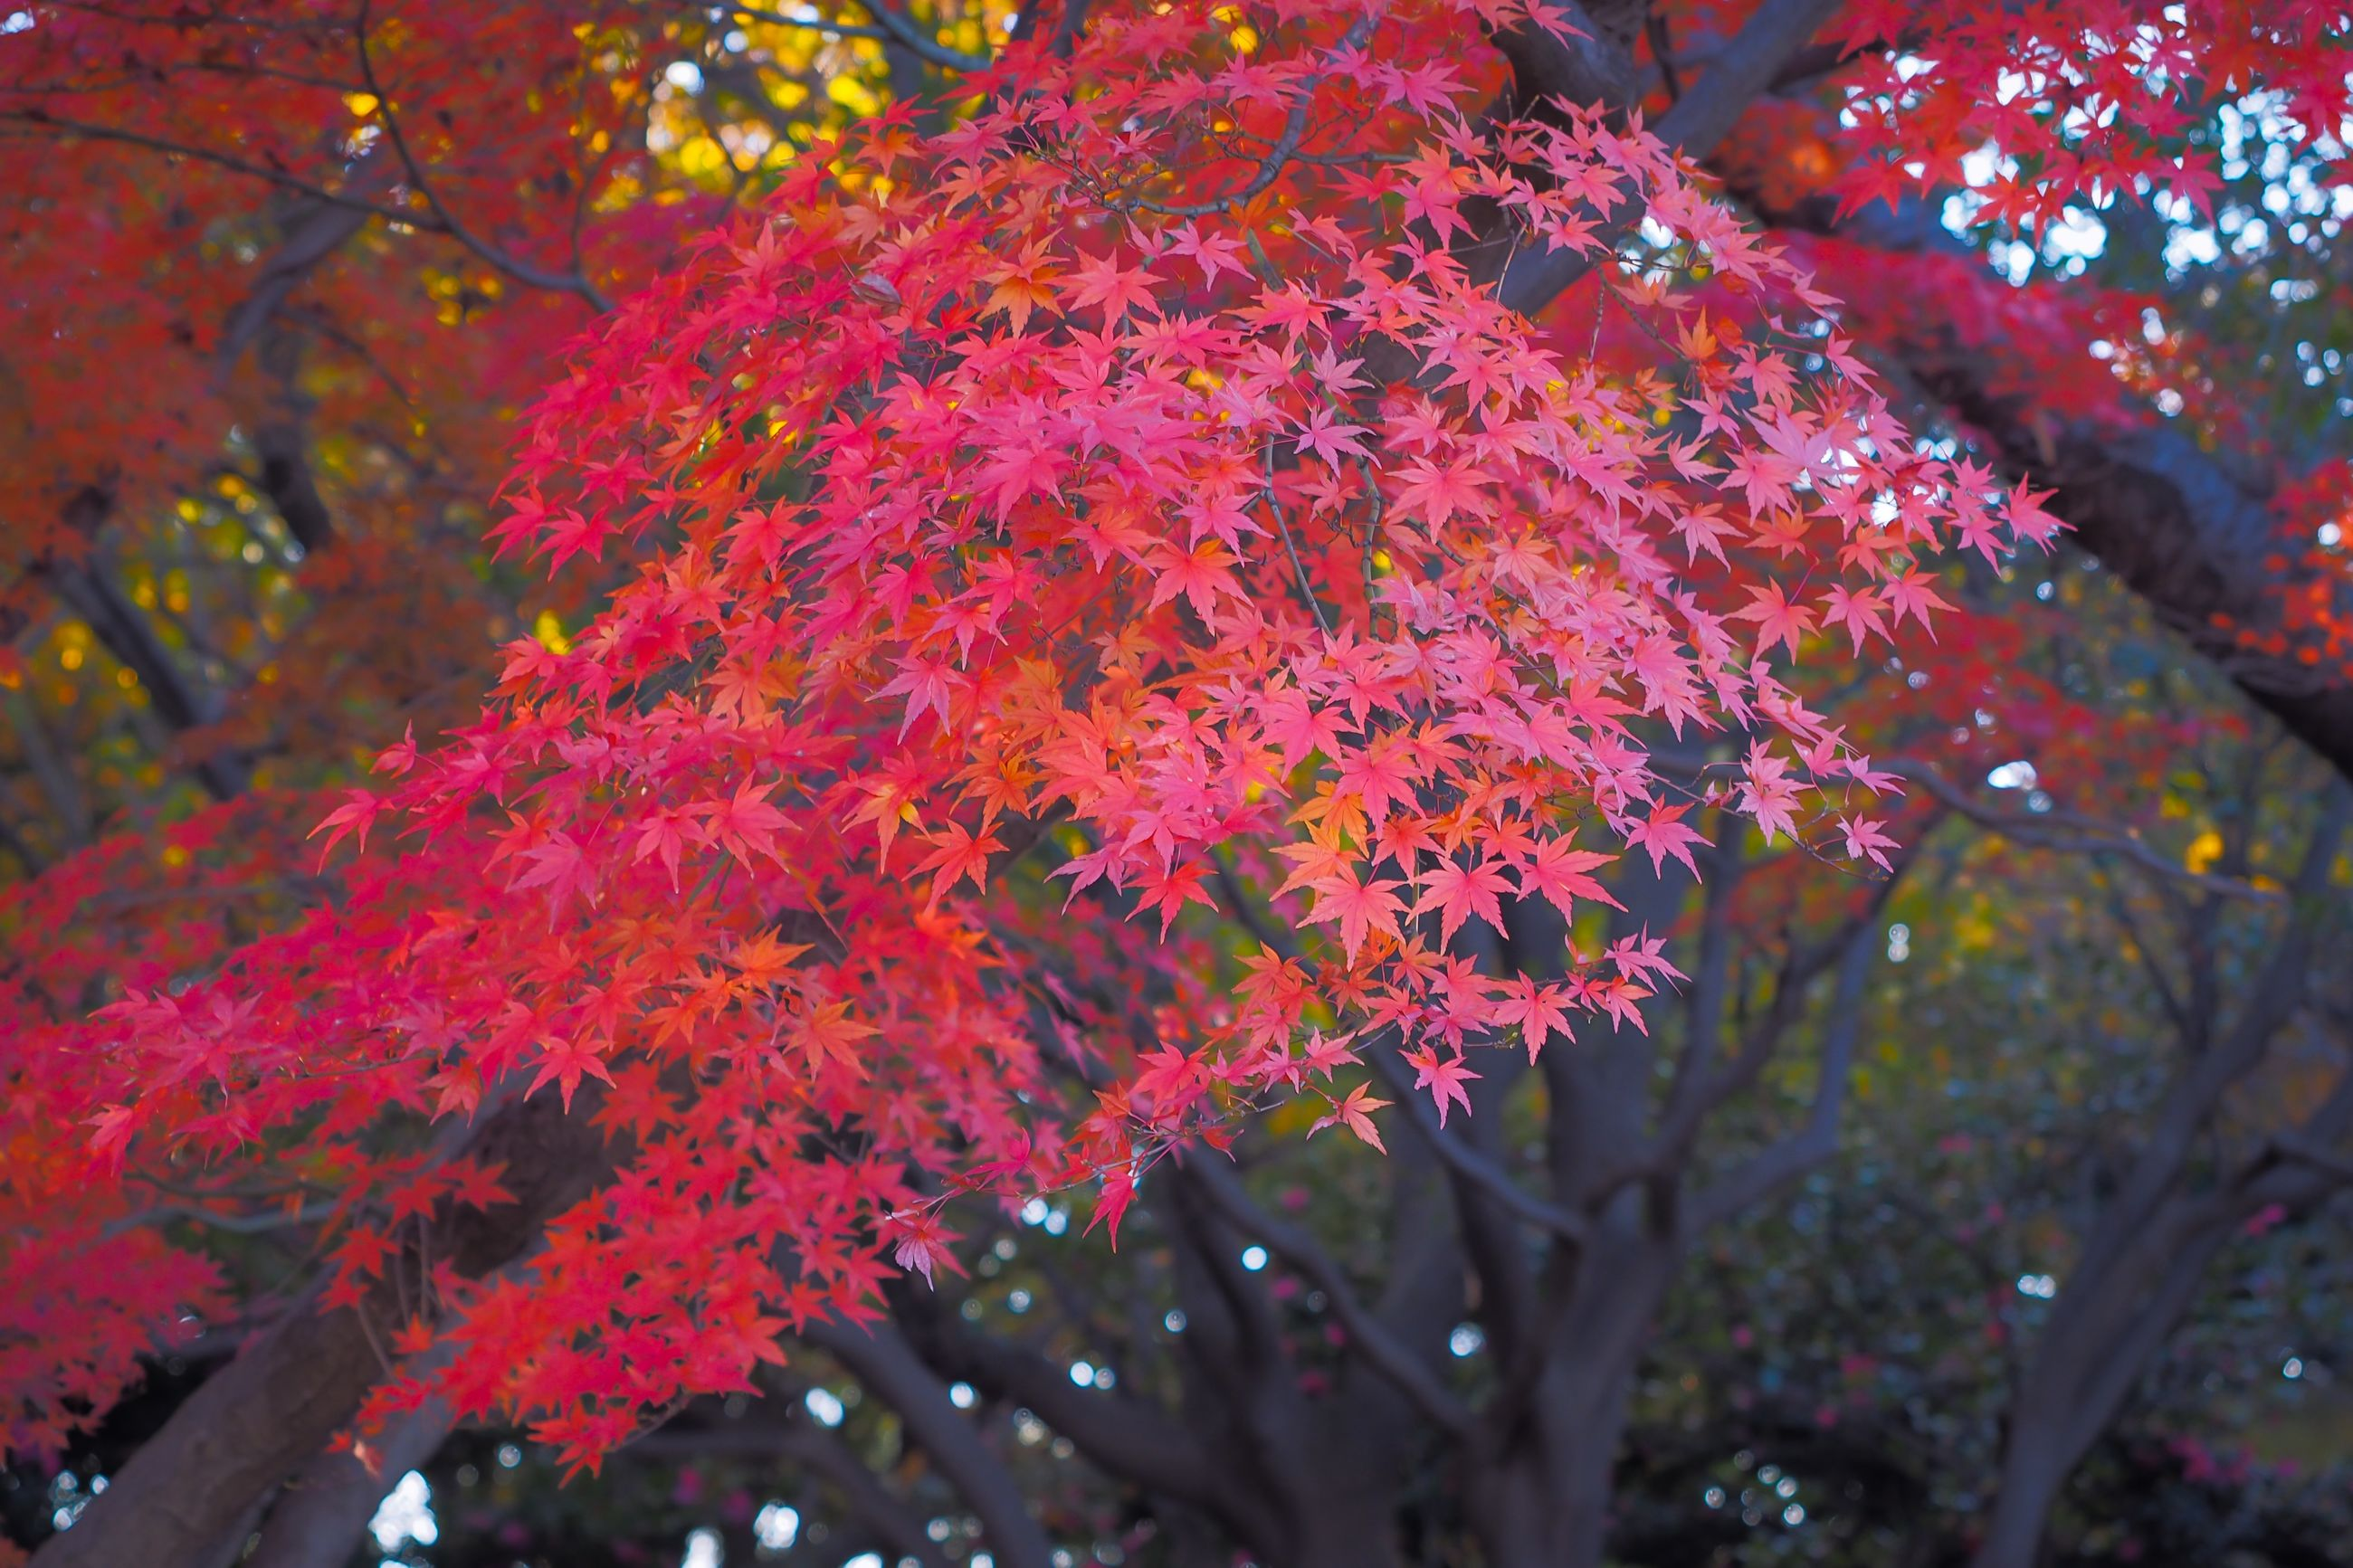 tree, branch, growth, autumn, change, beauty in nature, season, nature, leaf, low angle view, tranquility, red, day, sunlight, outdoors, park - man made space, no people, flower, scenics, close-up